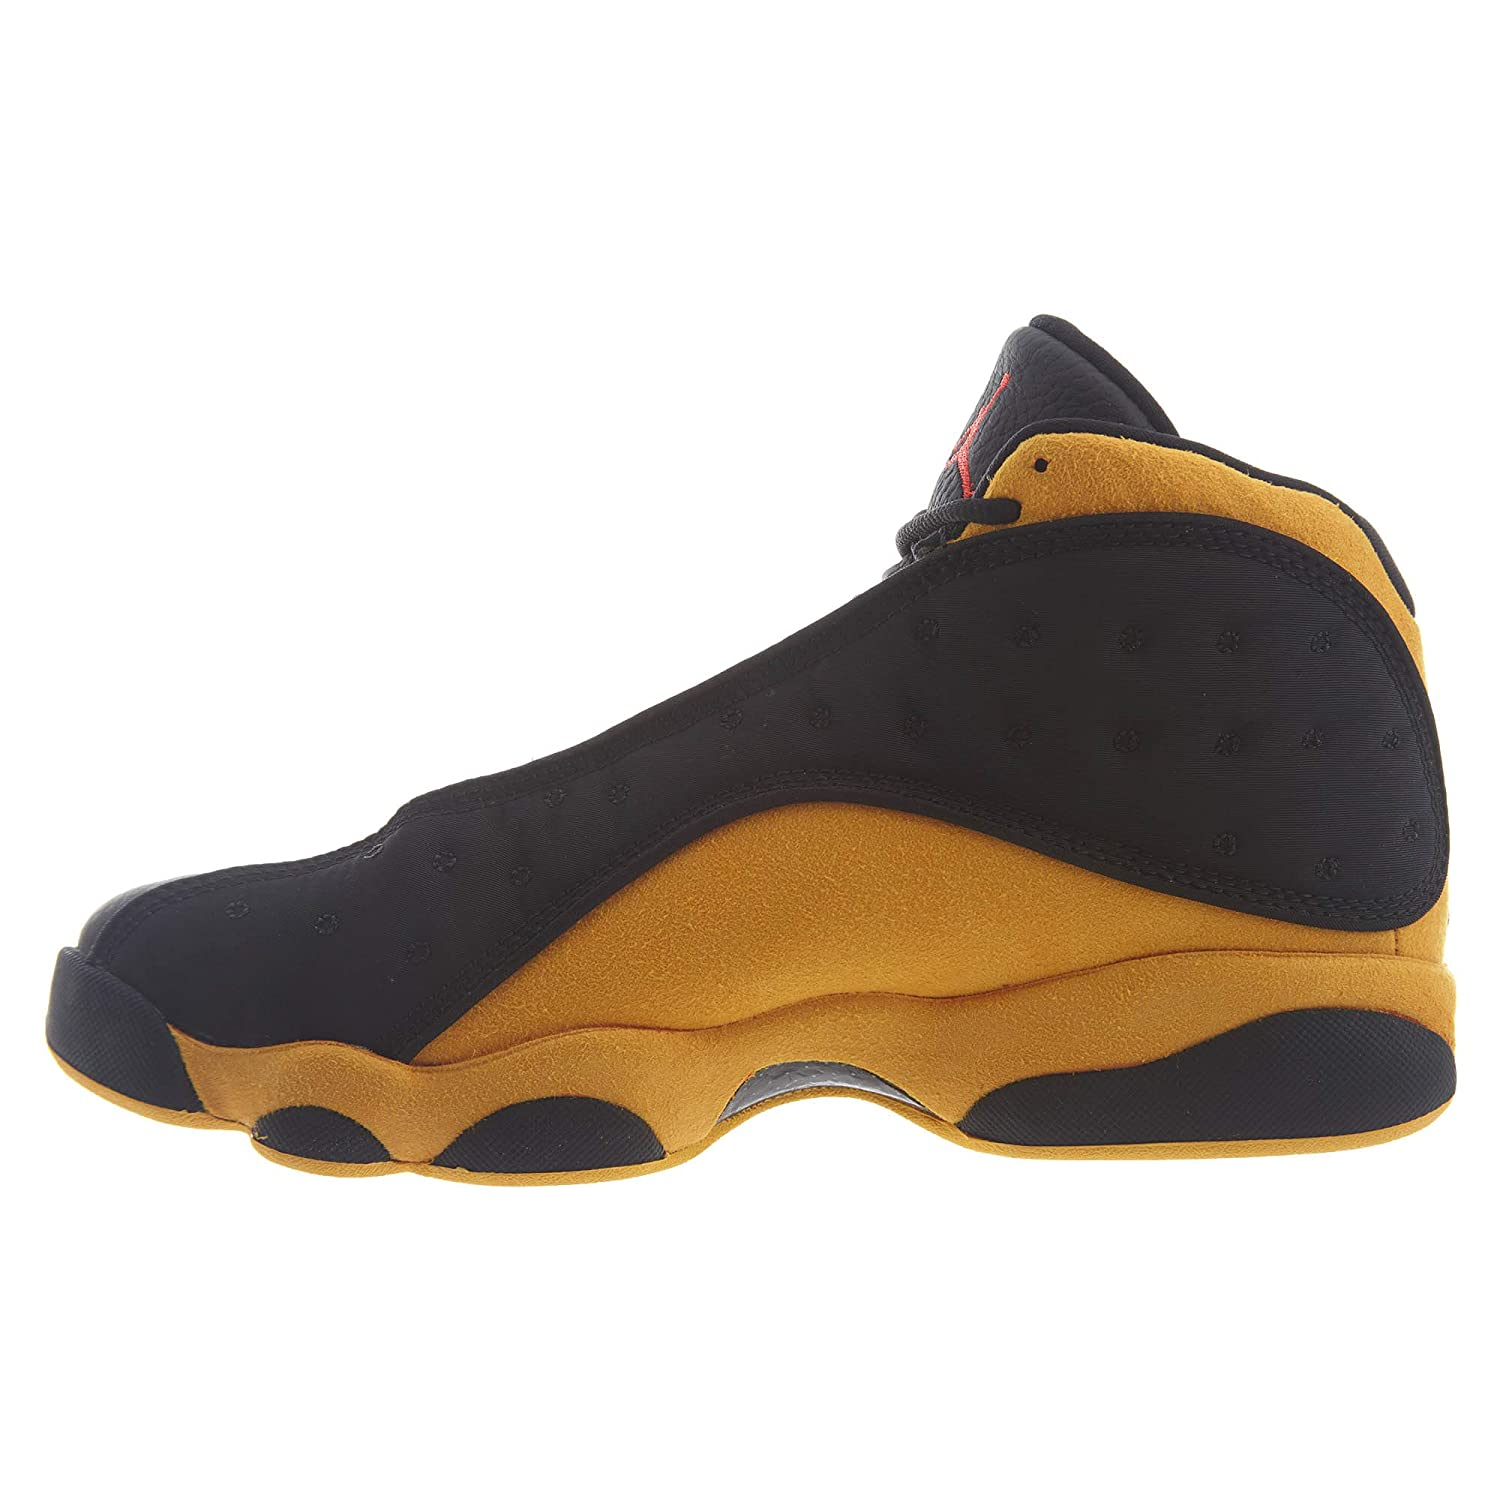 sports shoes 5db36 fa685 Amazon.com   NIKE Air Jordan 13 Retro Men s Basketball Shoes Black  University Red 414571 035 (10.5)   Fashion Sneakers